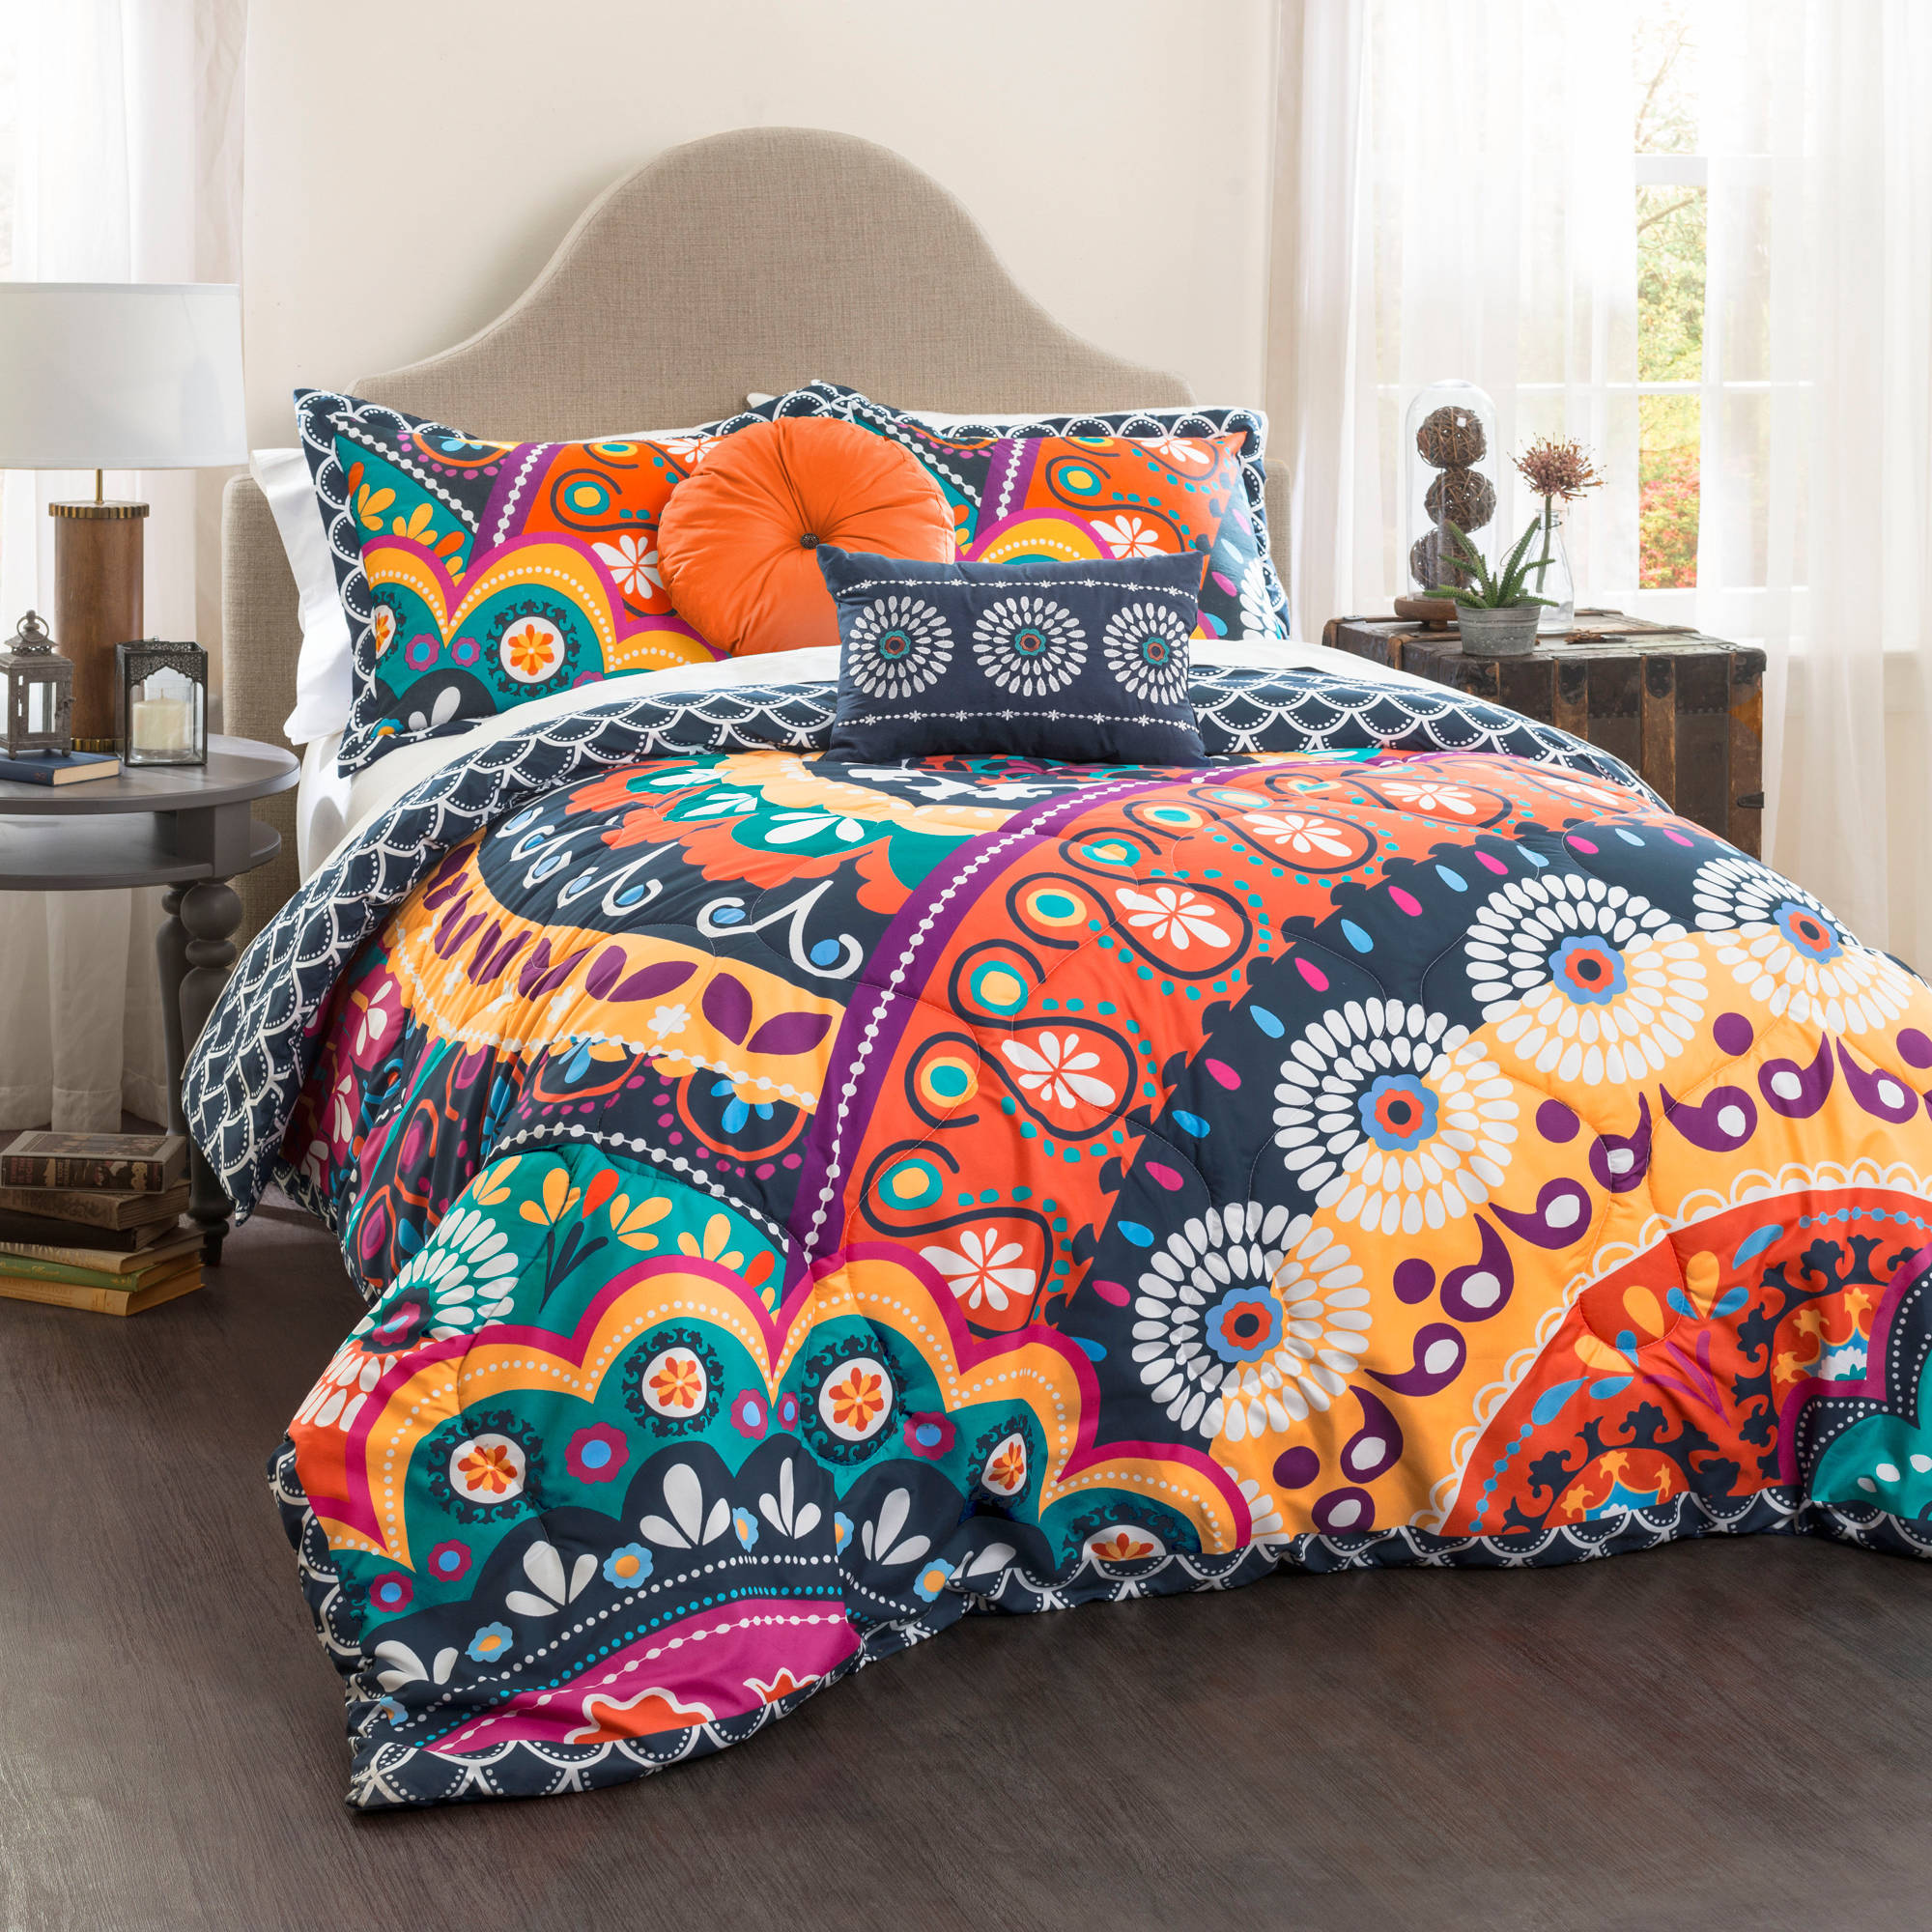 paisley duvet modern boho striped set ethnic bedding reversible bohemian grape style cotton pattern colorful cover comforter hippie product piece